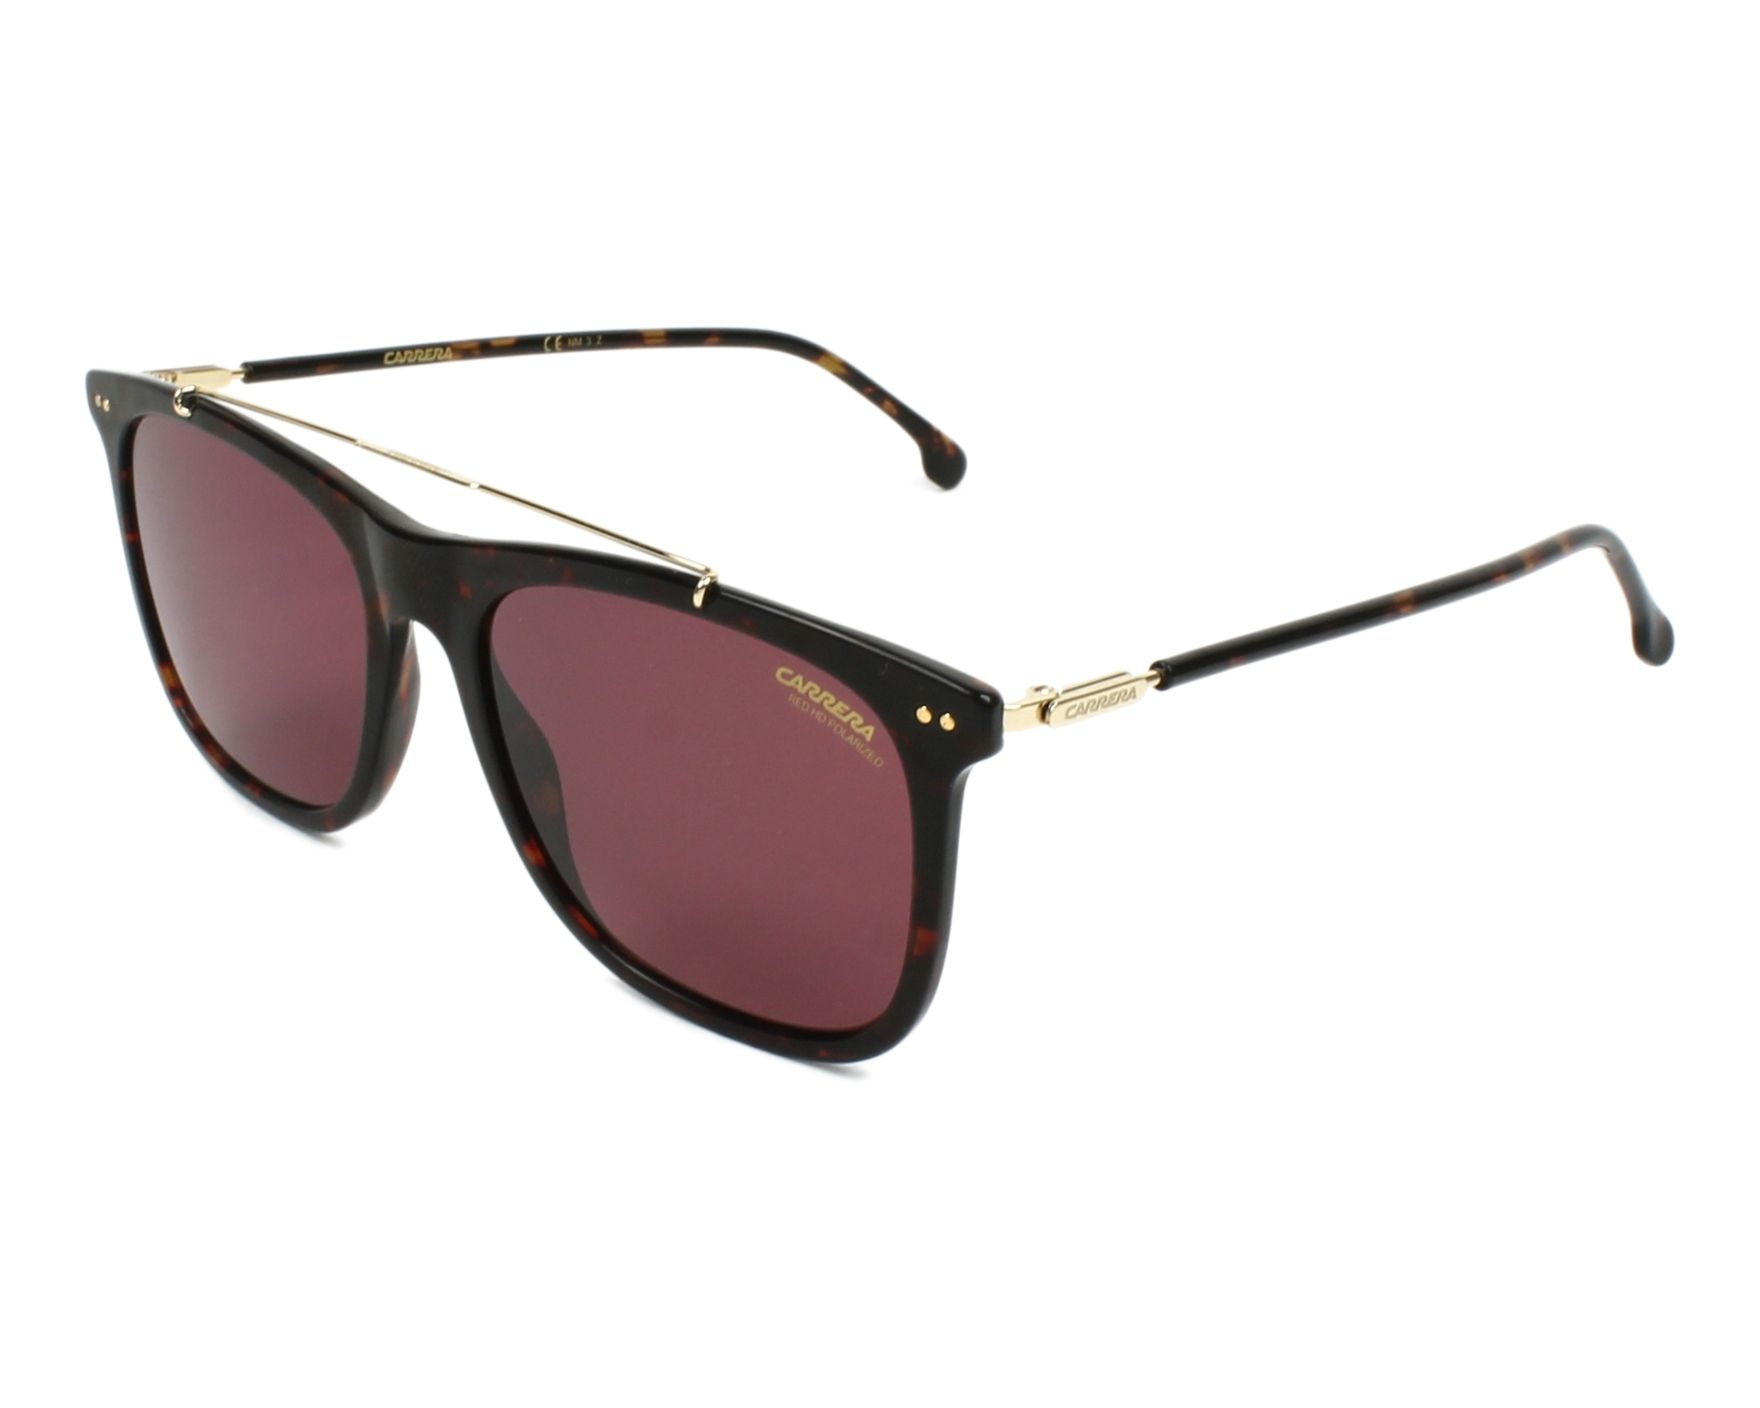 Buy Carrera Sunglasses CARRERA-150-S 086/W6 Online - Visionet